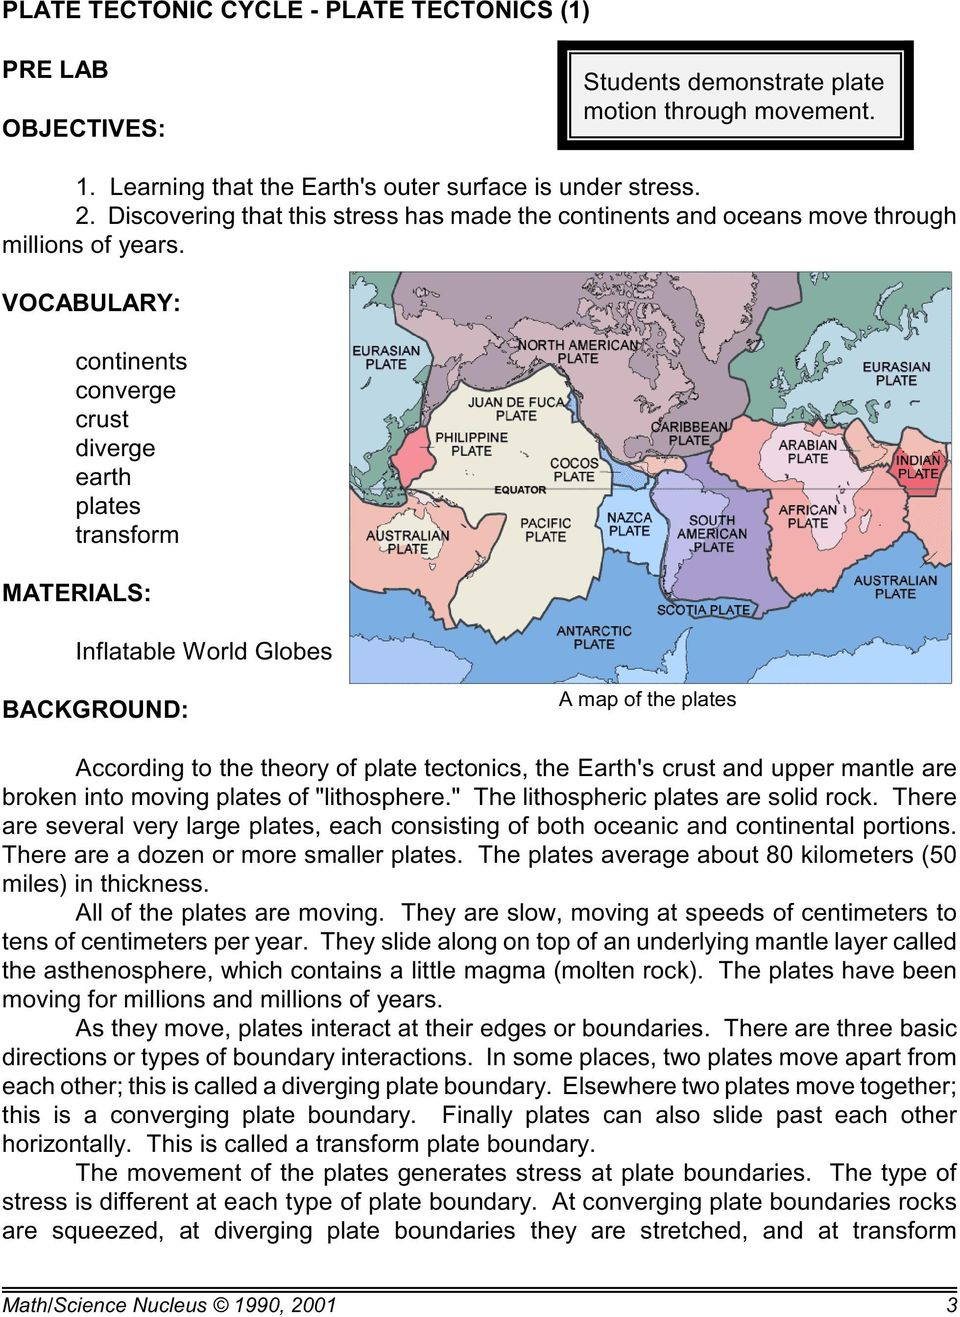 VOCABULARY: continents converge crust diverge earth plates transform MATERIALS: Inflatable World Globes BACKGROUND: A map of the plates According to the theory of plate tectonics, the Earth's crust